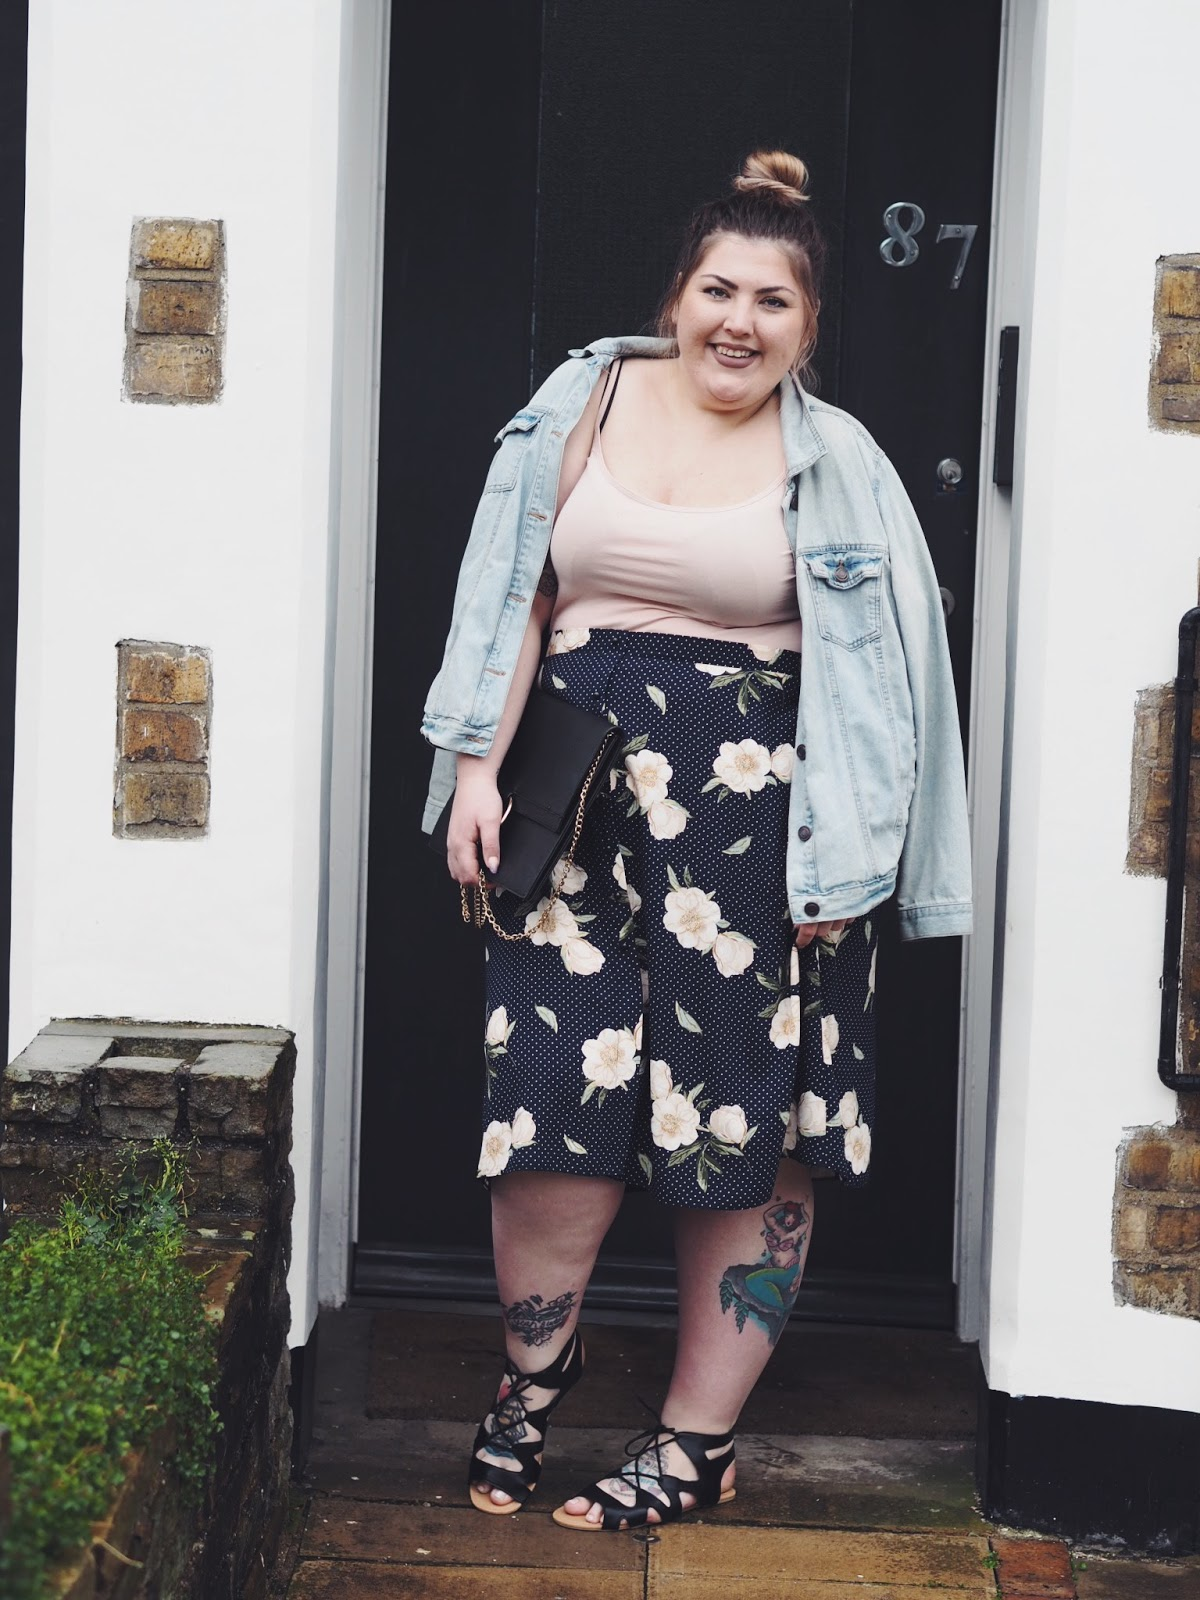 George Asda Plus Size Fashion Range - Review Cardifforniagurl